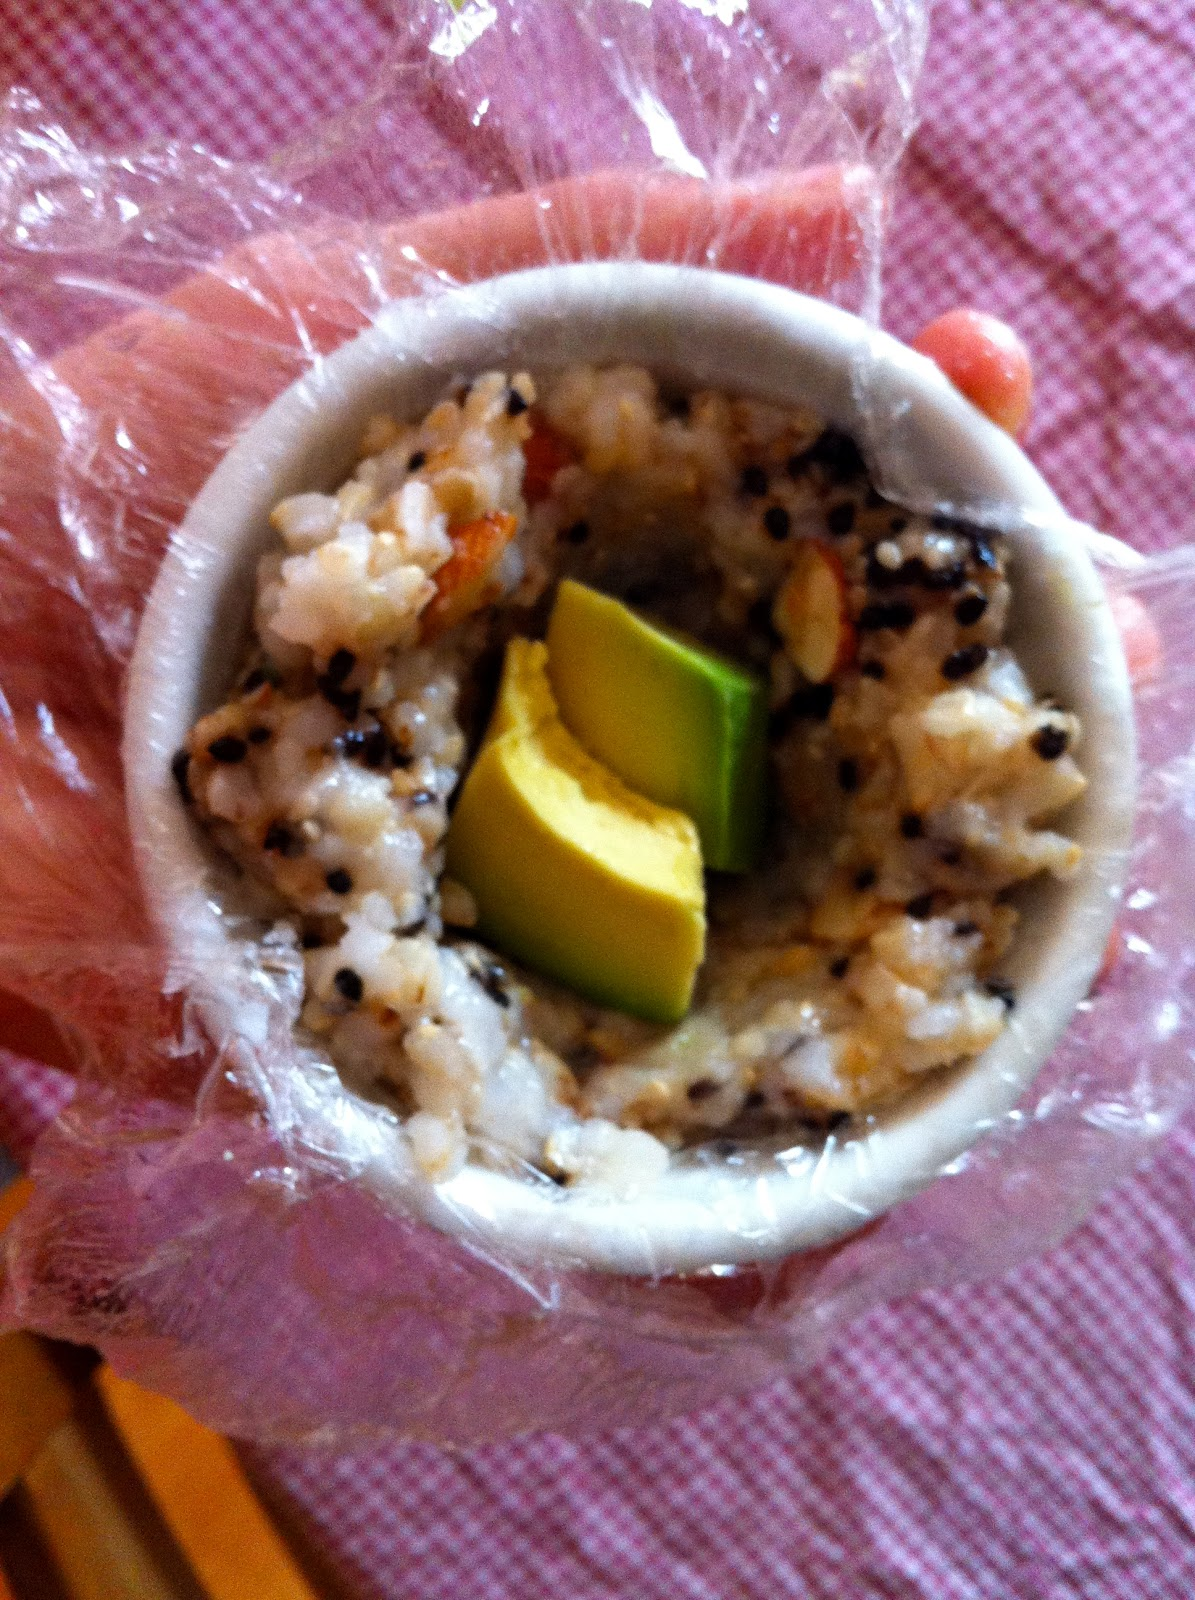 local lunch box: Sesame & Almond brown rice balls with avocado